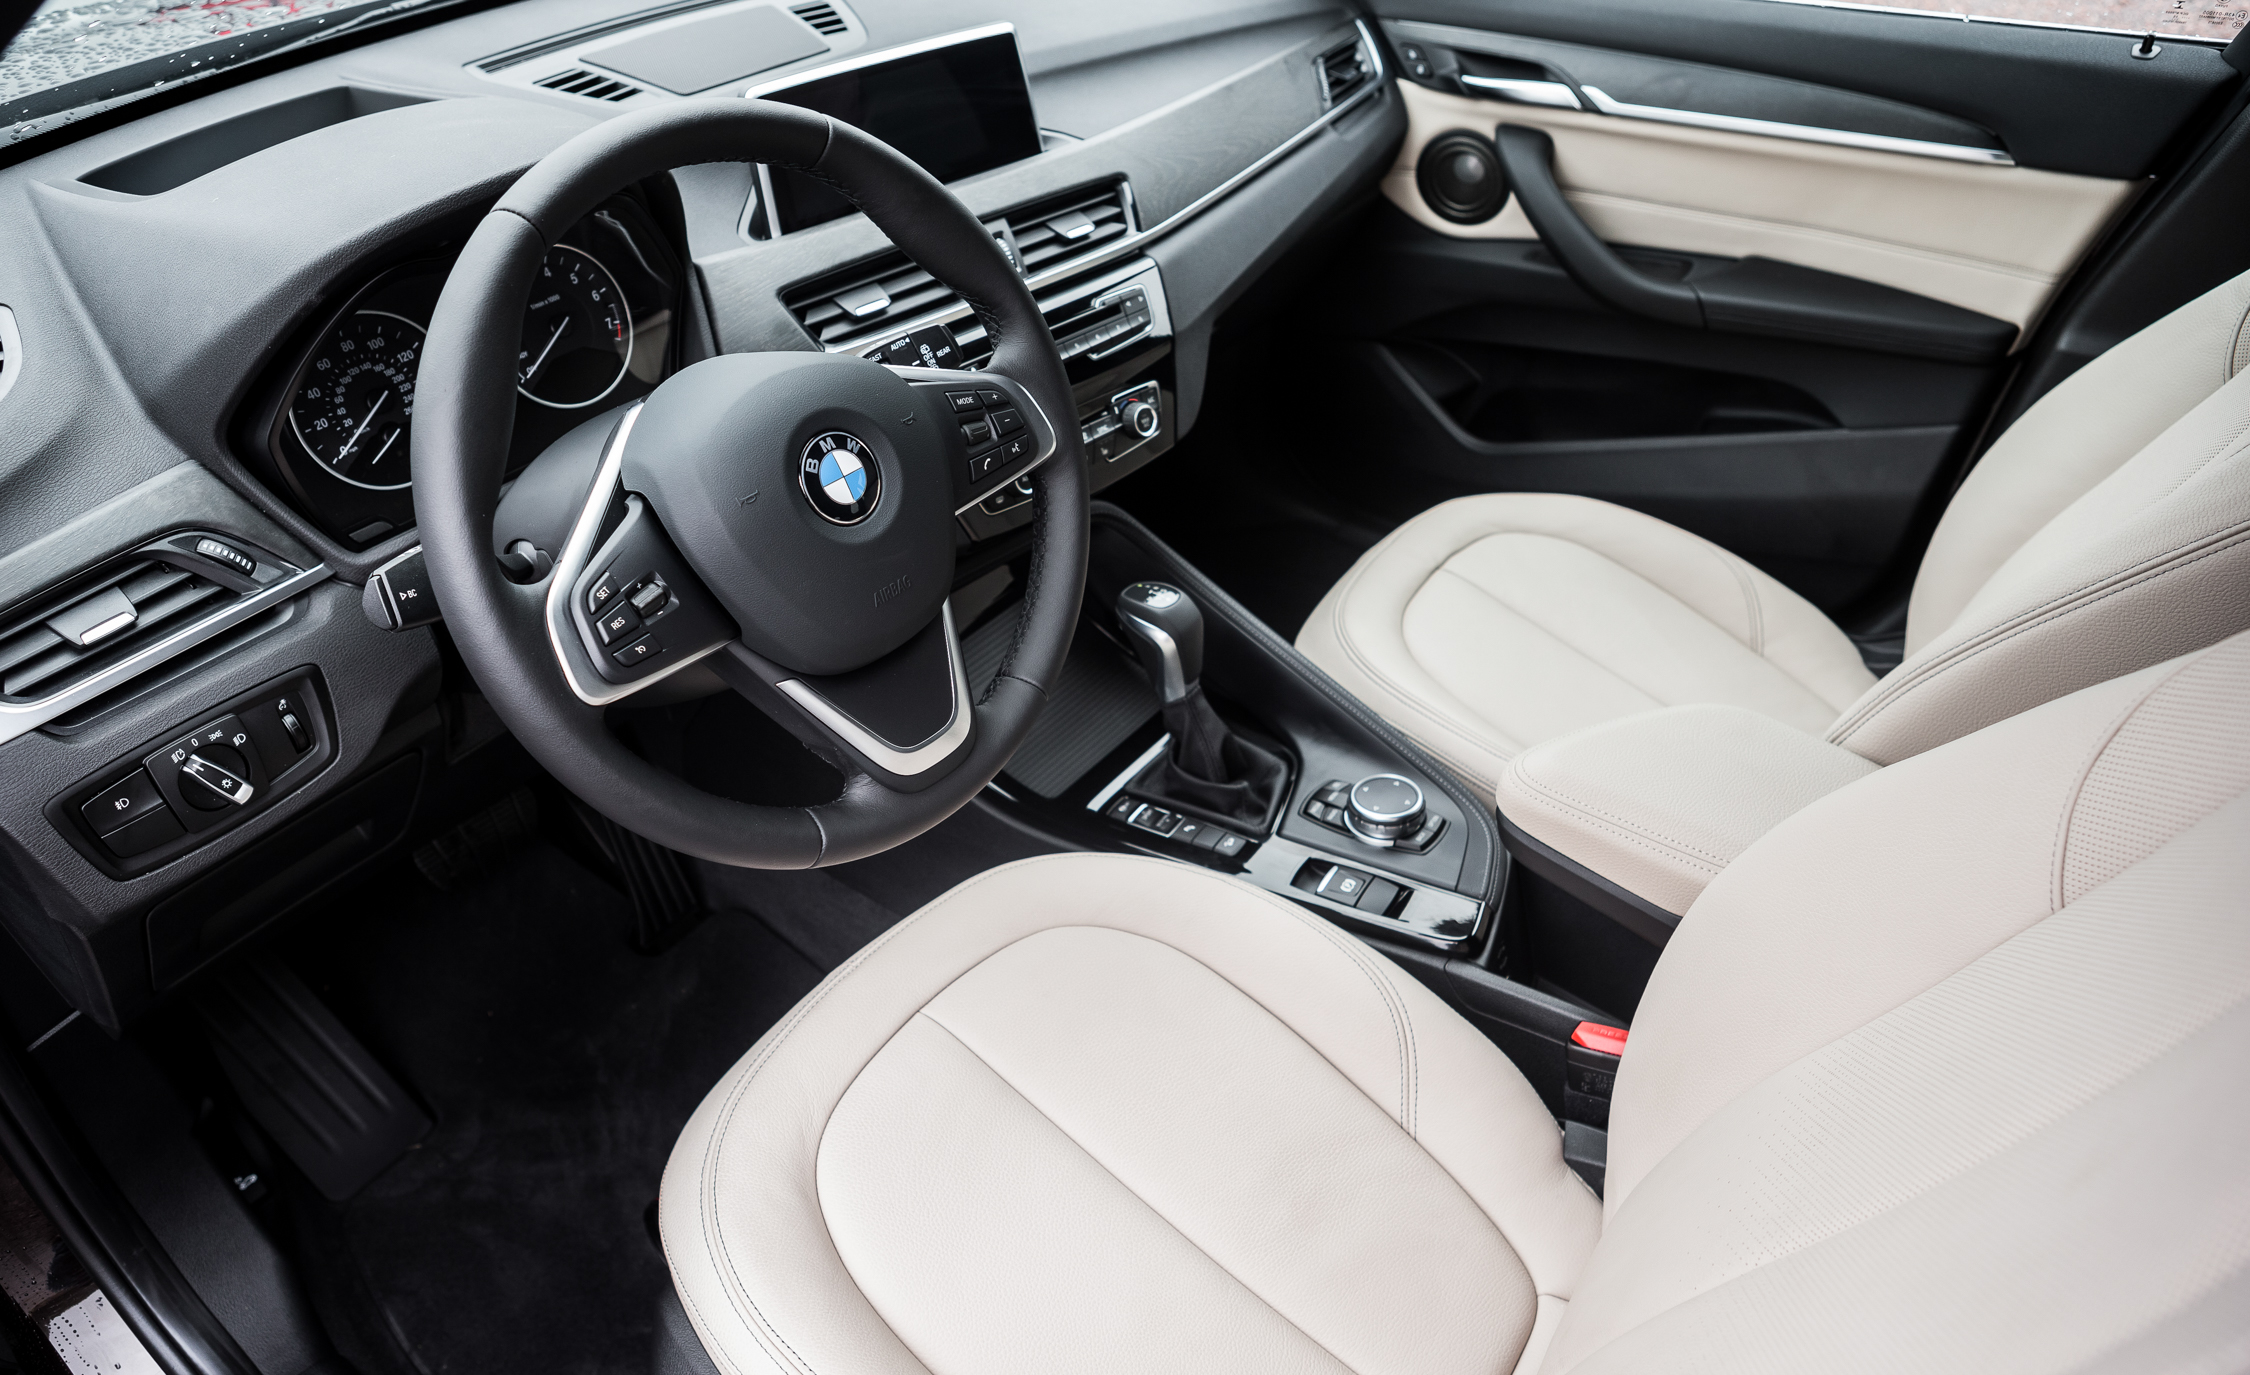 2016 BMW X1 Interior Driver Cockpit Steering (View 24 of 36)